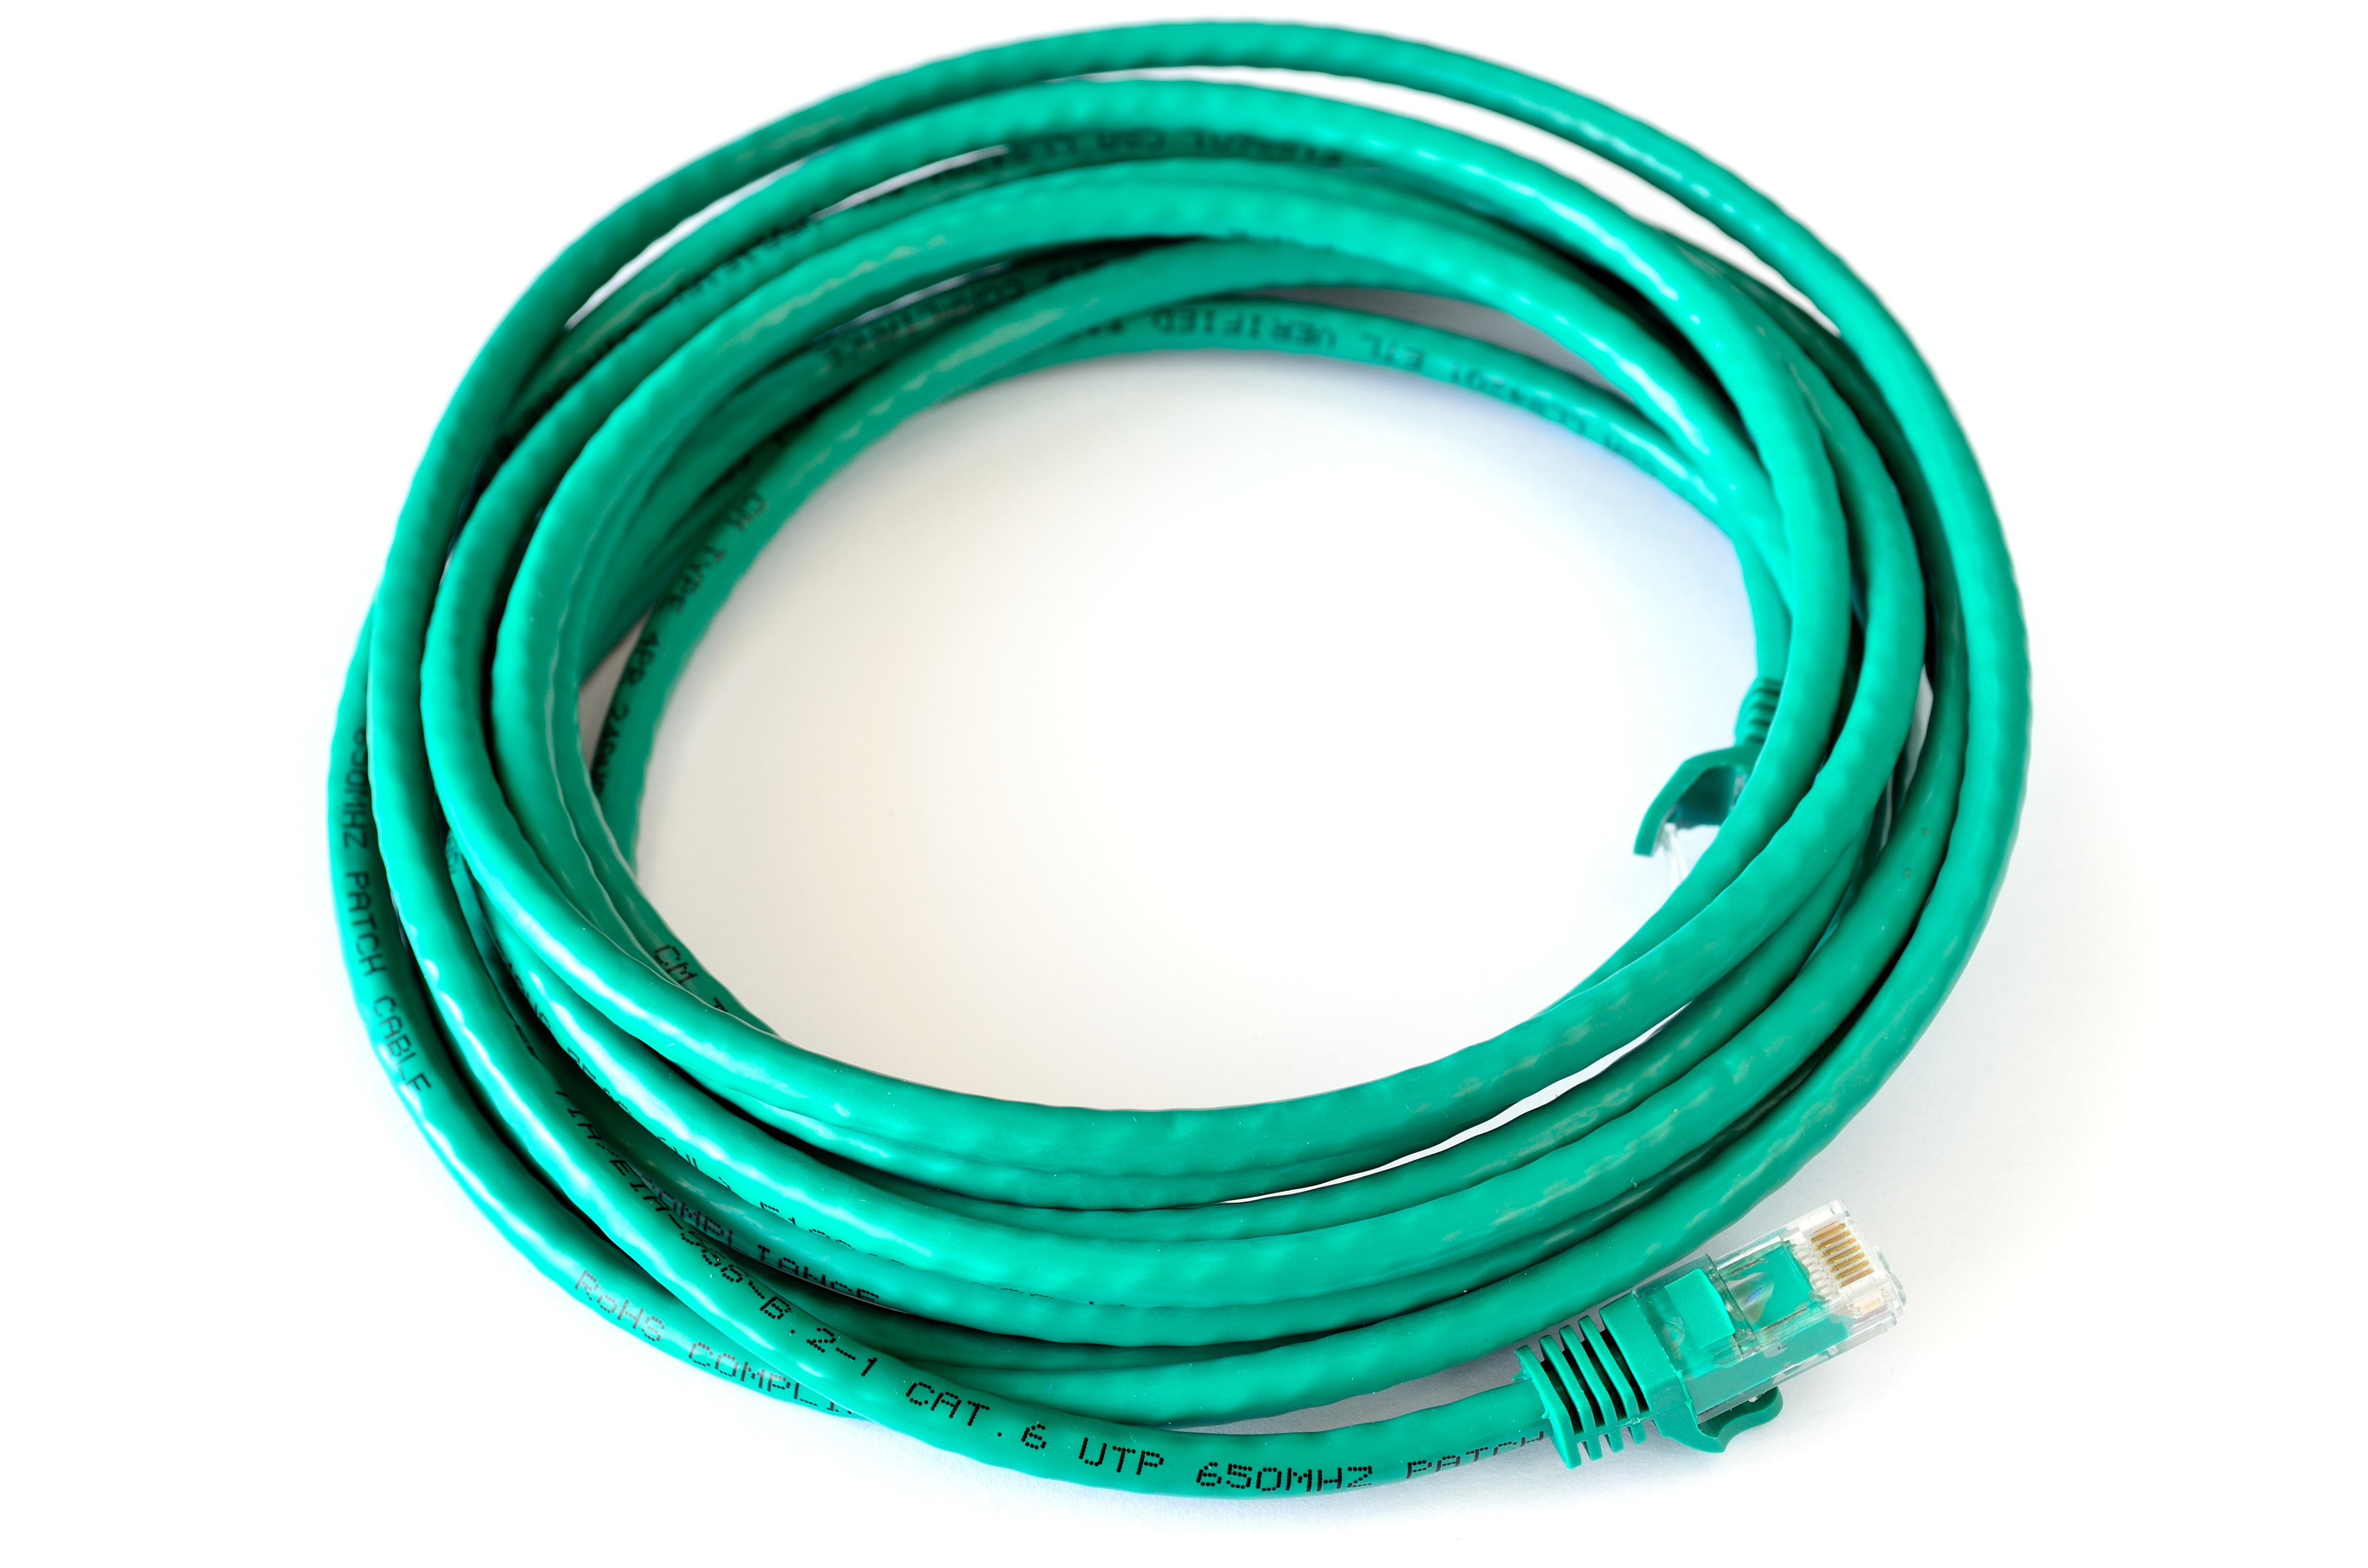 Category 6 cable - Wikiwand